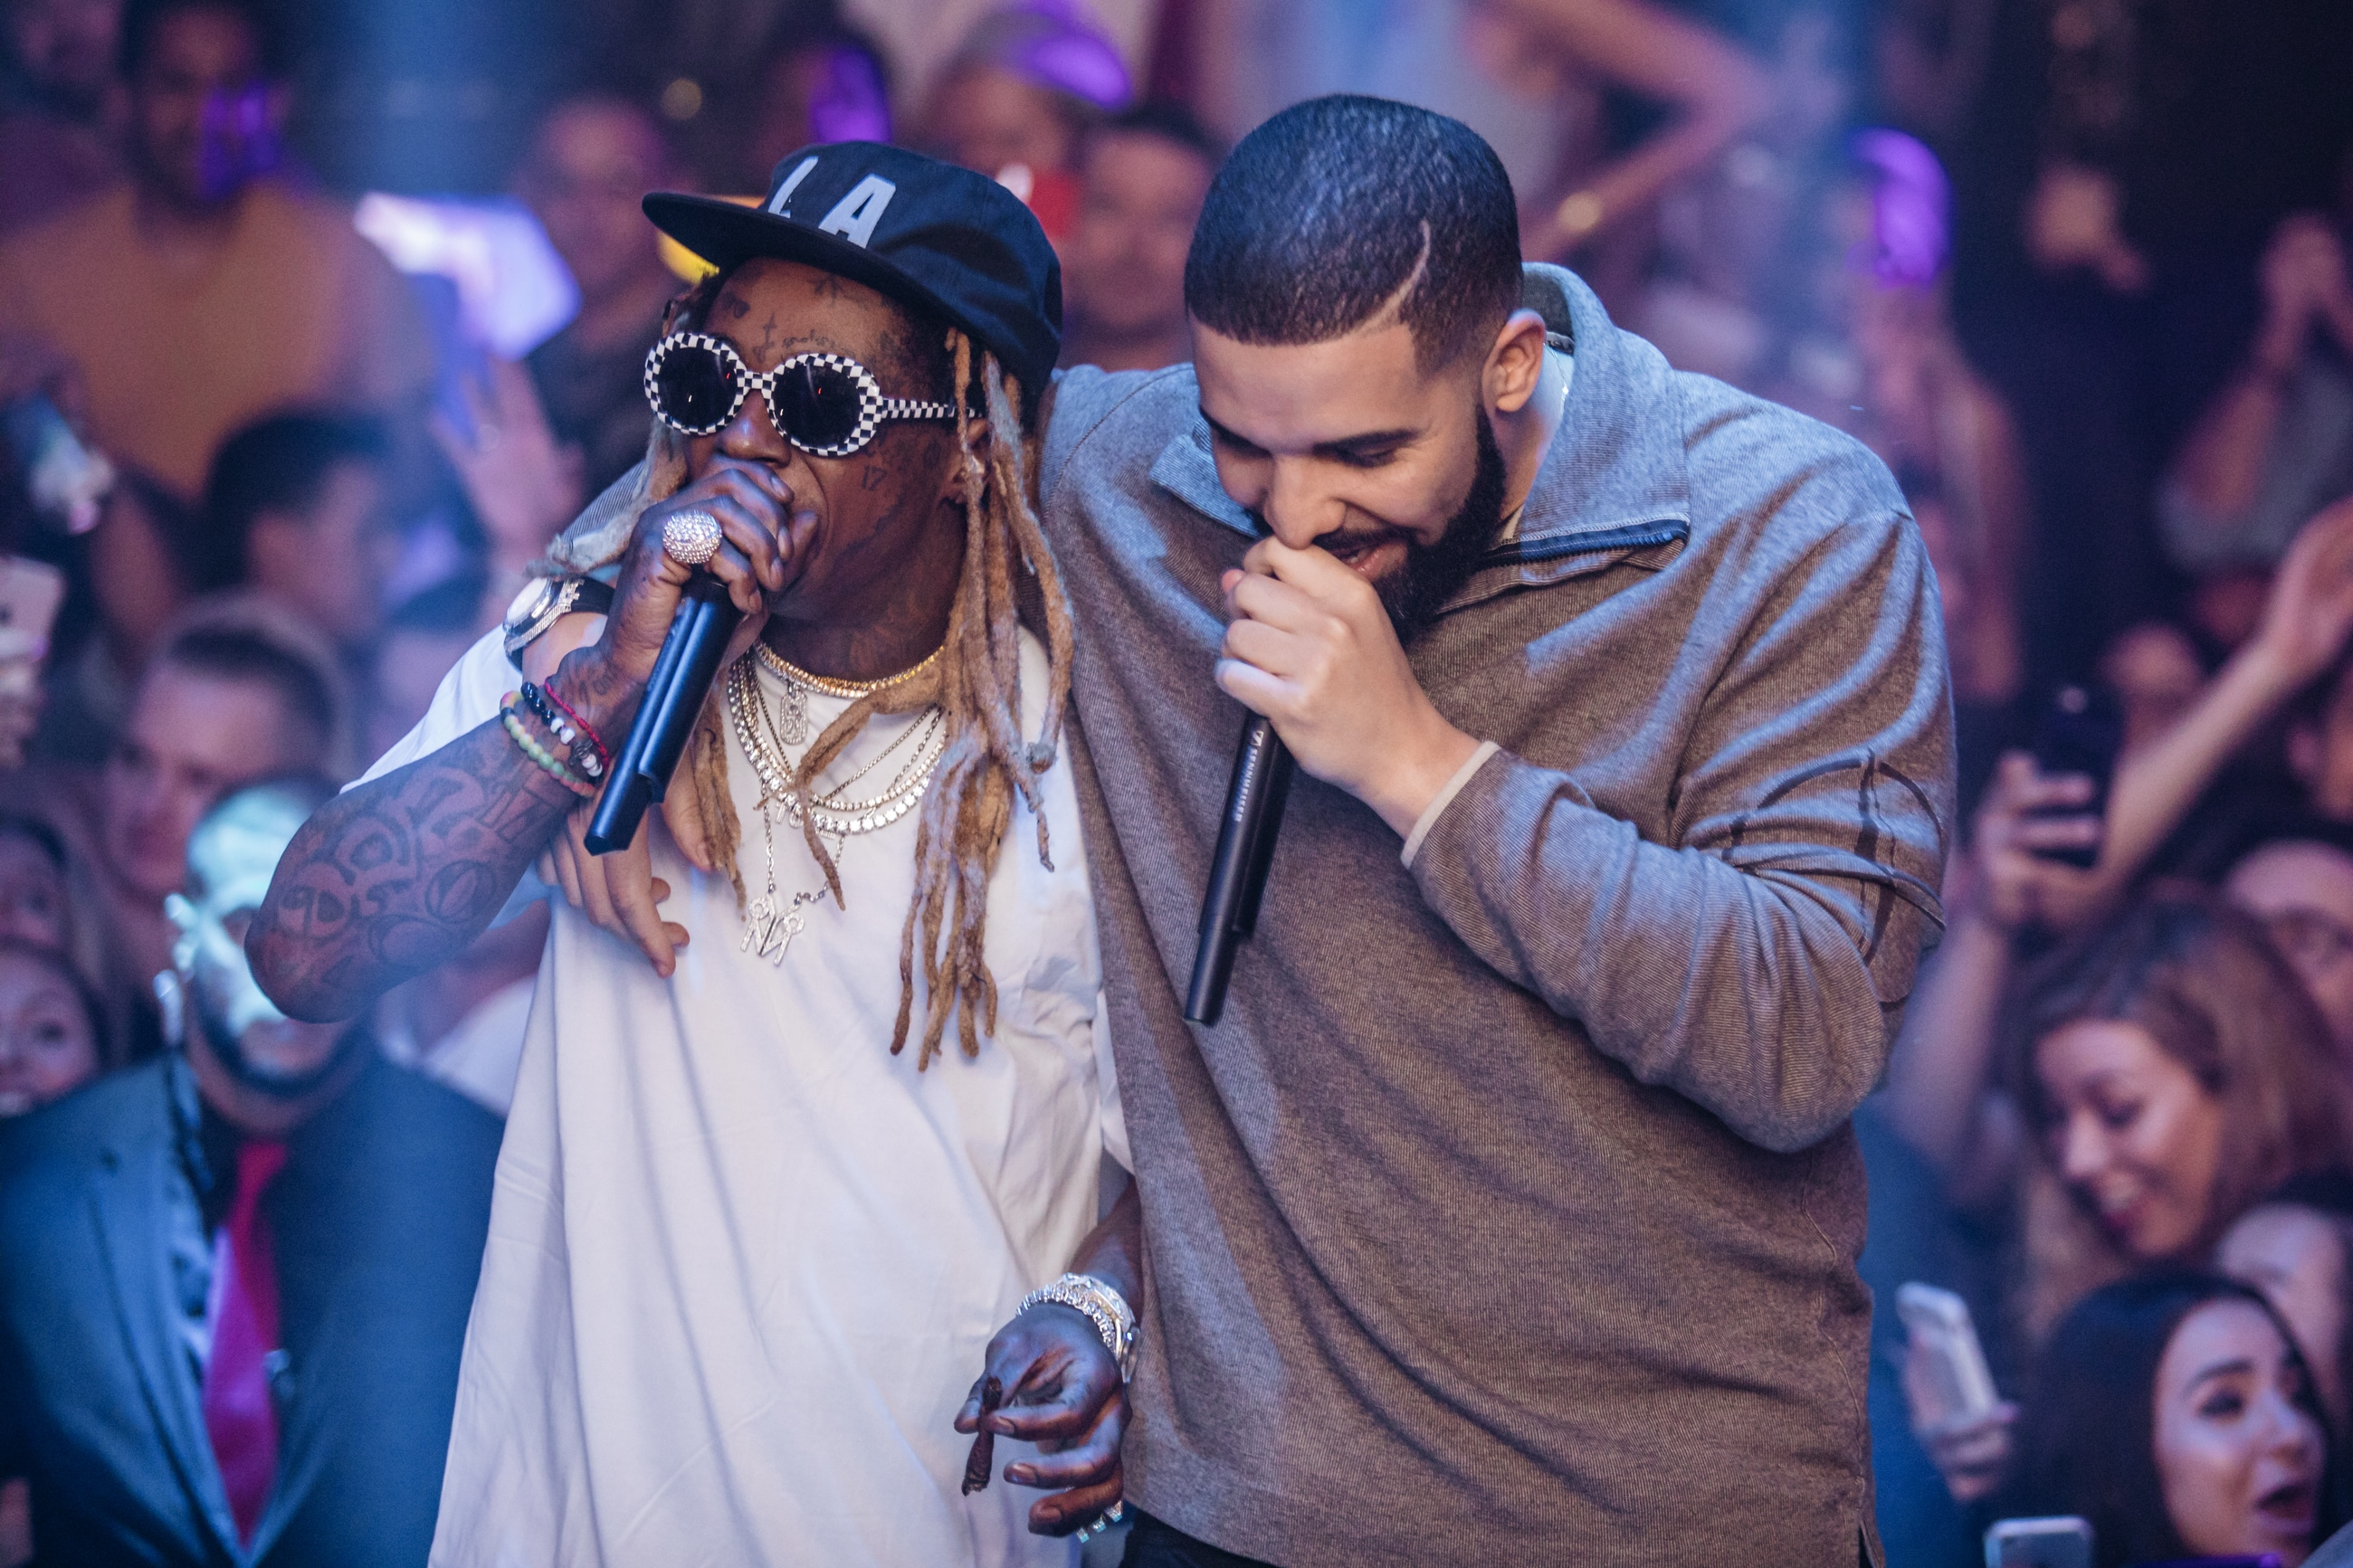 Lil Wayne and Drake Art Basel